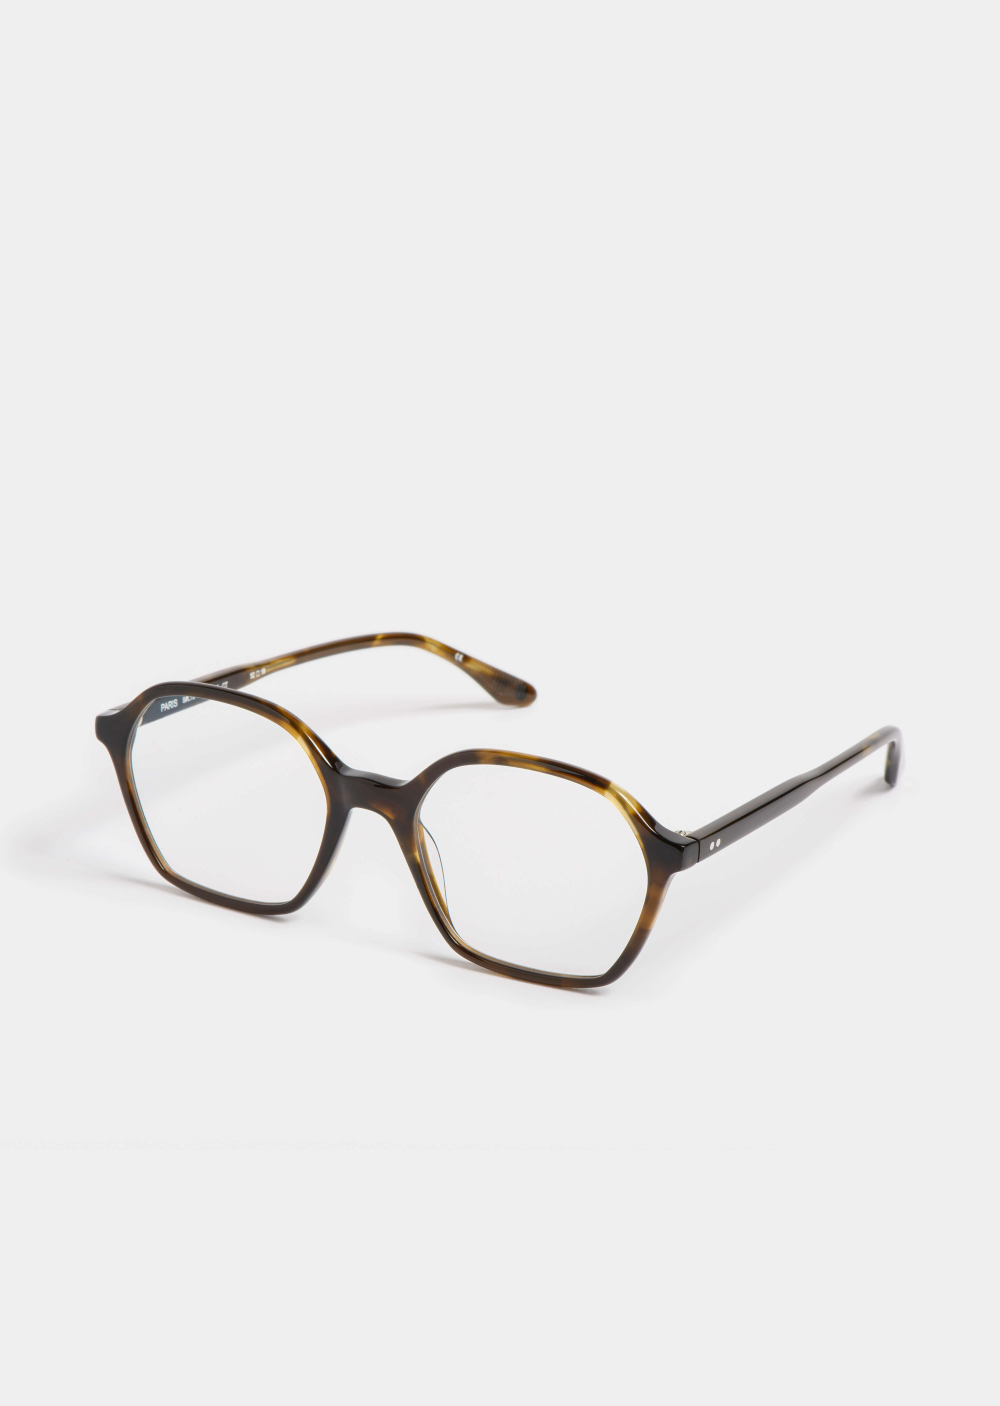 PETER AND MAY -  - LT5 Colette RX camo tortoise